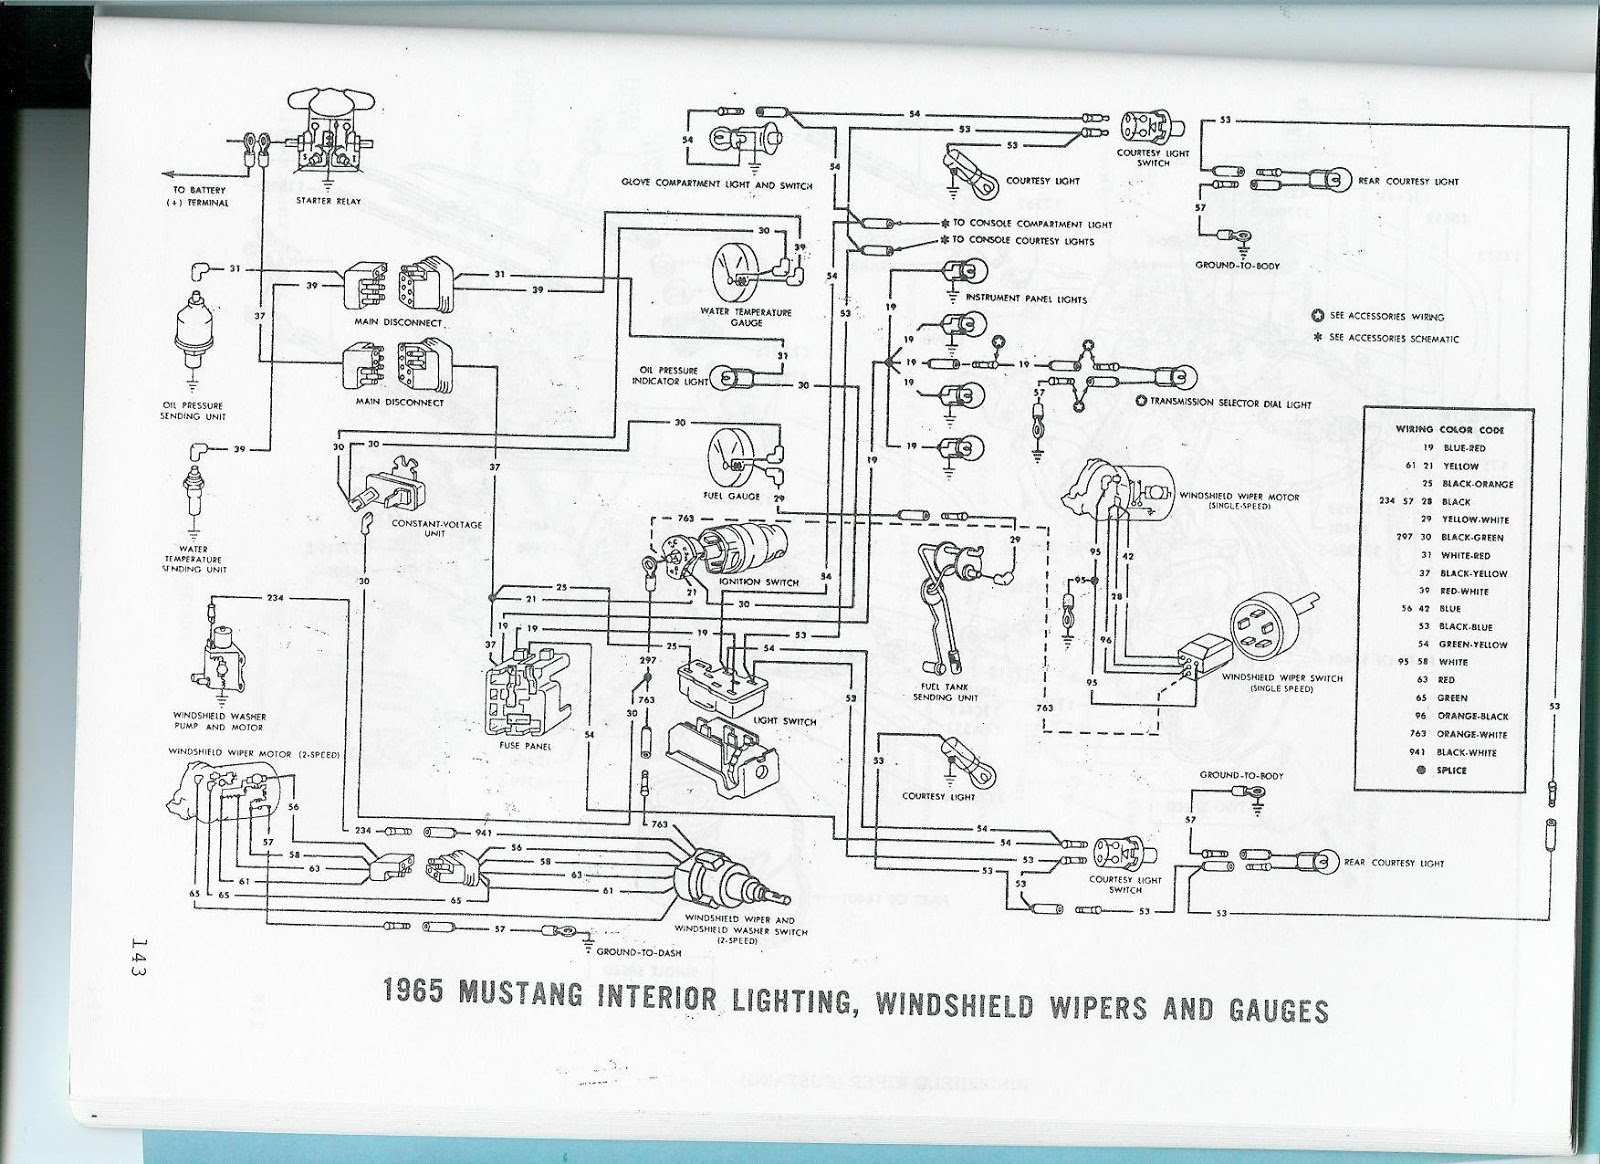 1966 Chevelle Wiring Harness Library 1968 Alternator Diagram The Care And Feeding Of Ponies 1965 Mustang Diagrams Fuse Block